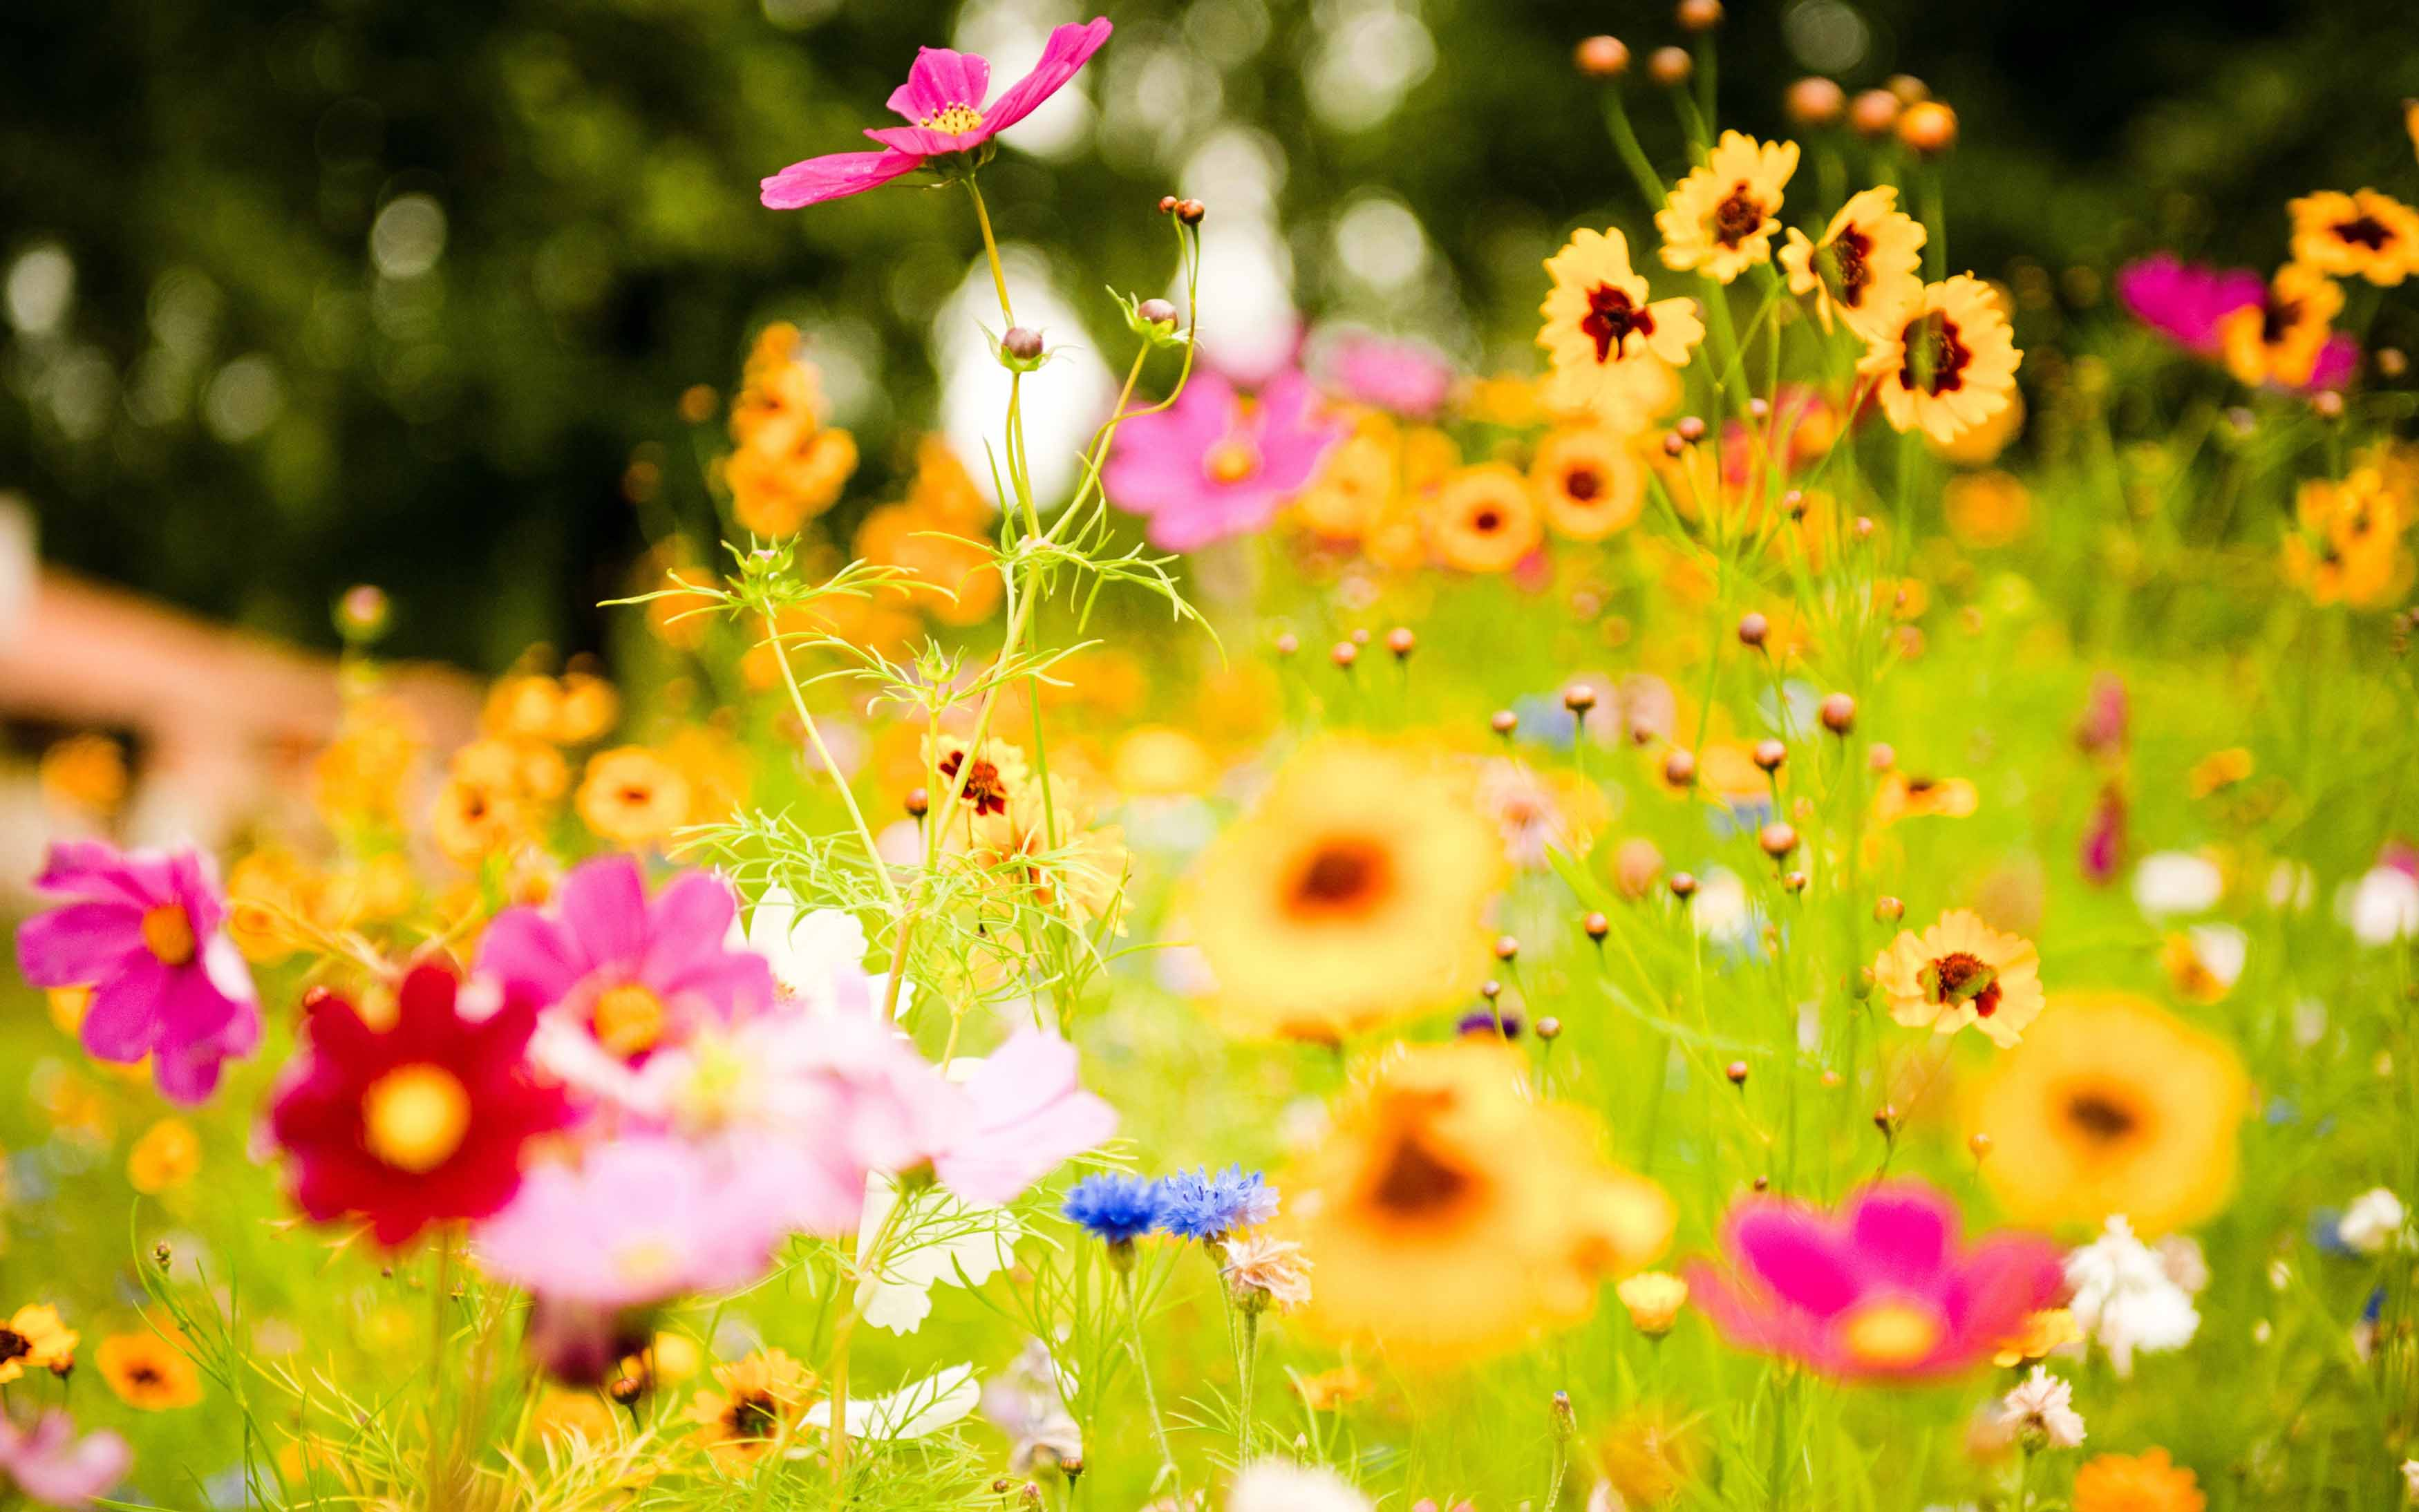 download File Name 757973 Gallery For Bright Flowers 3500x2188